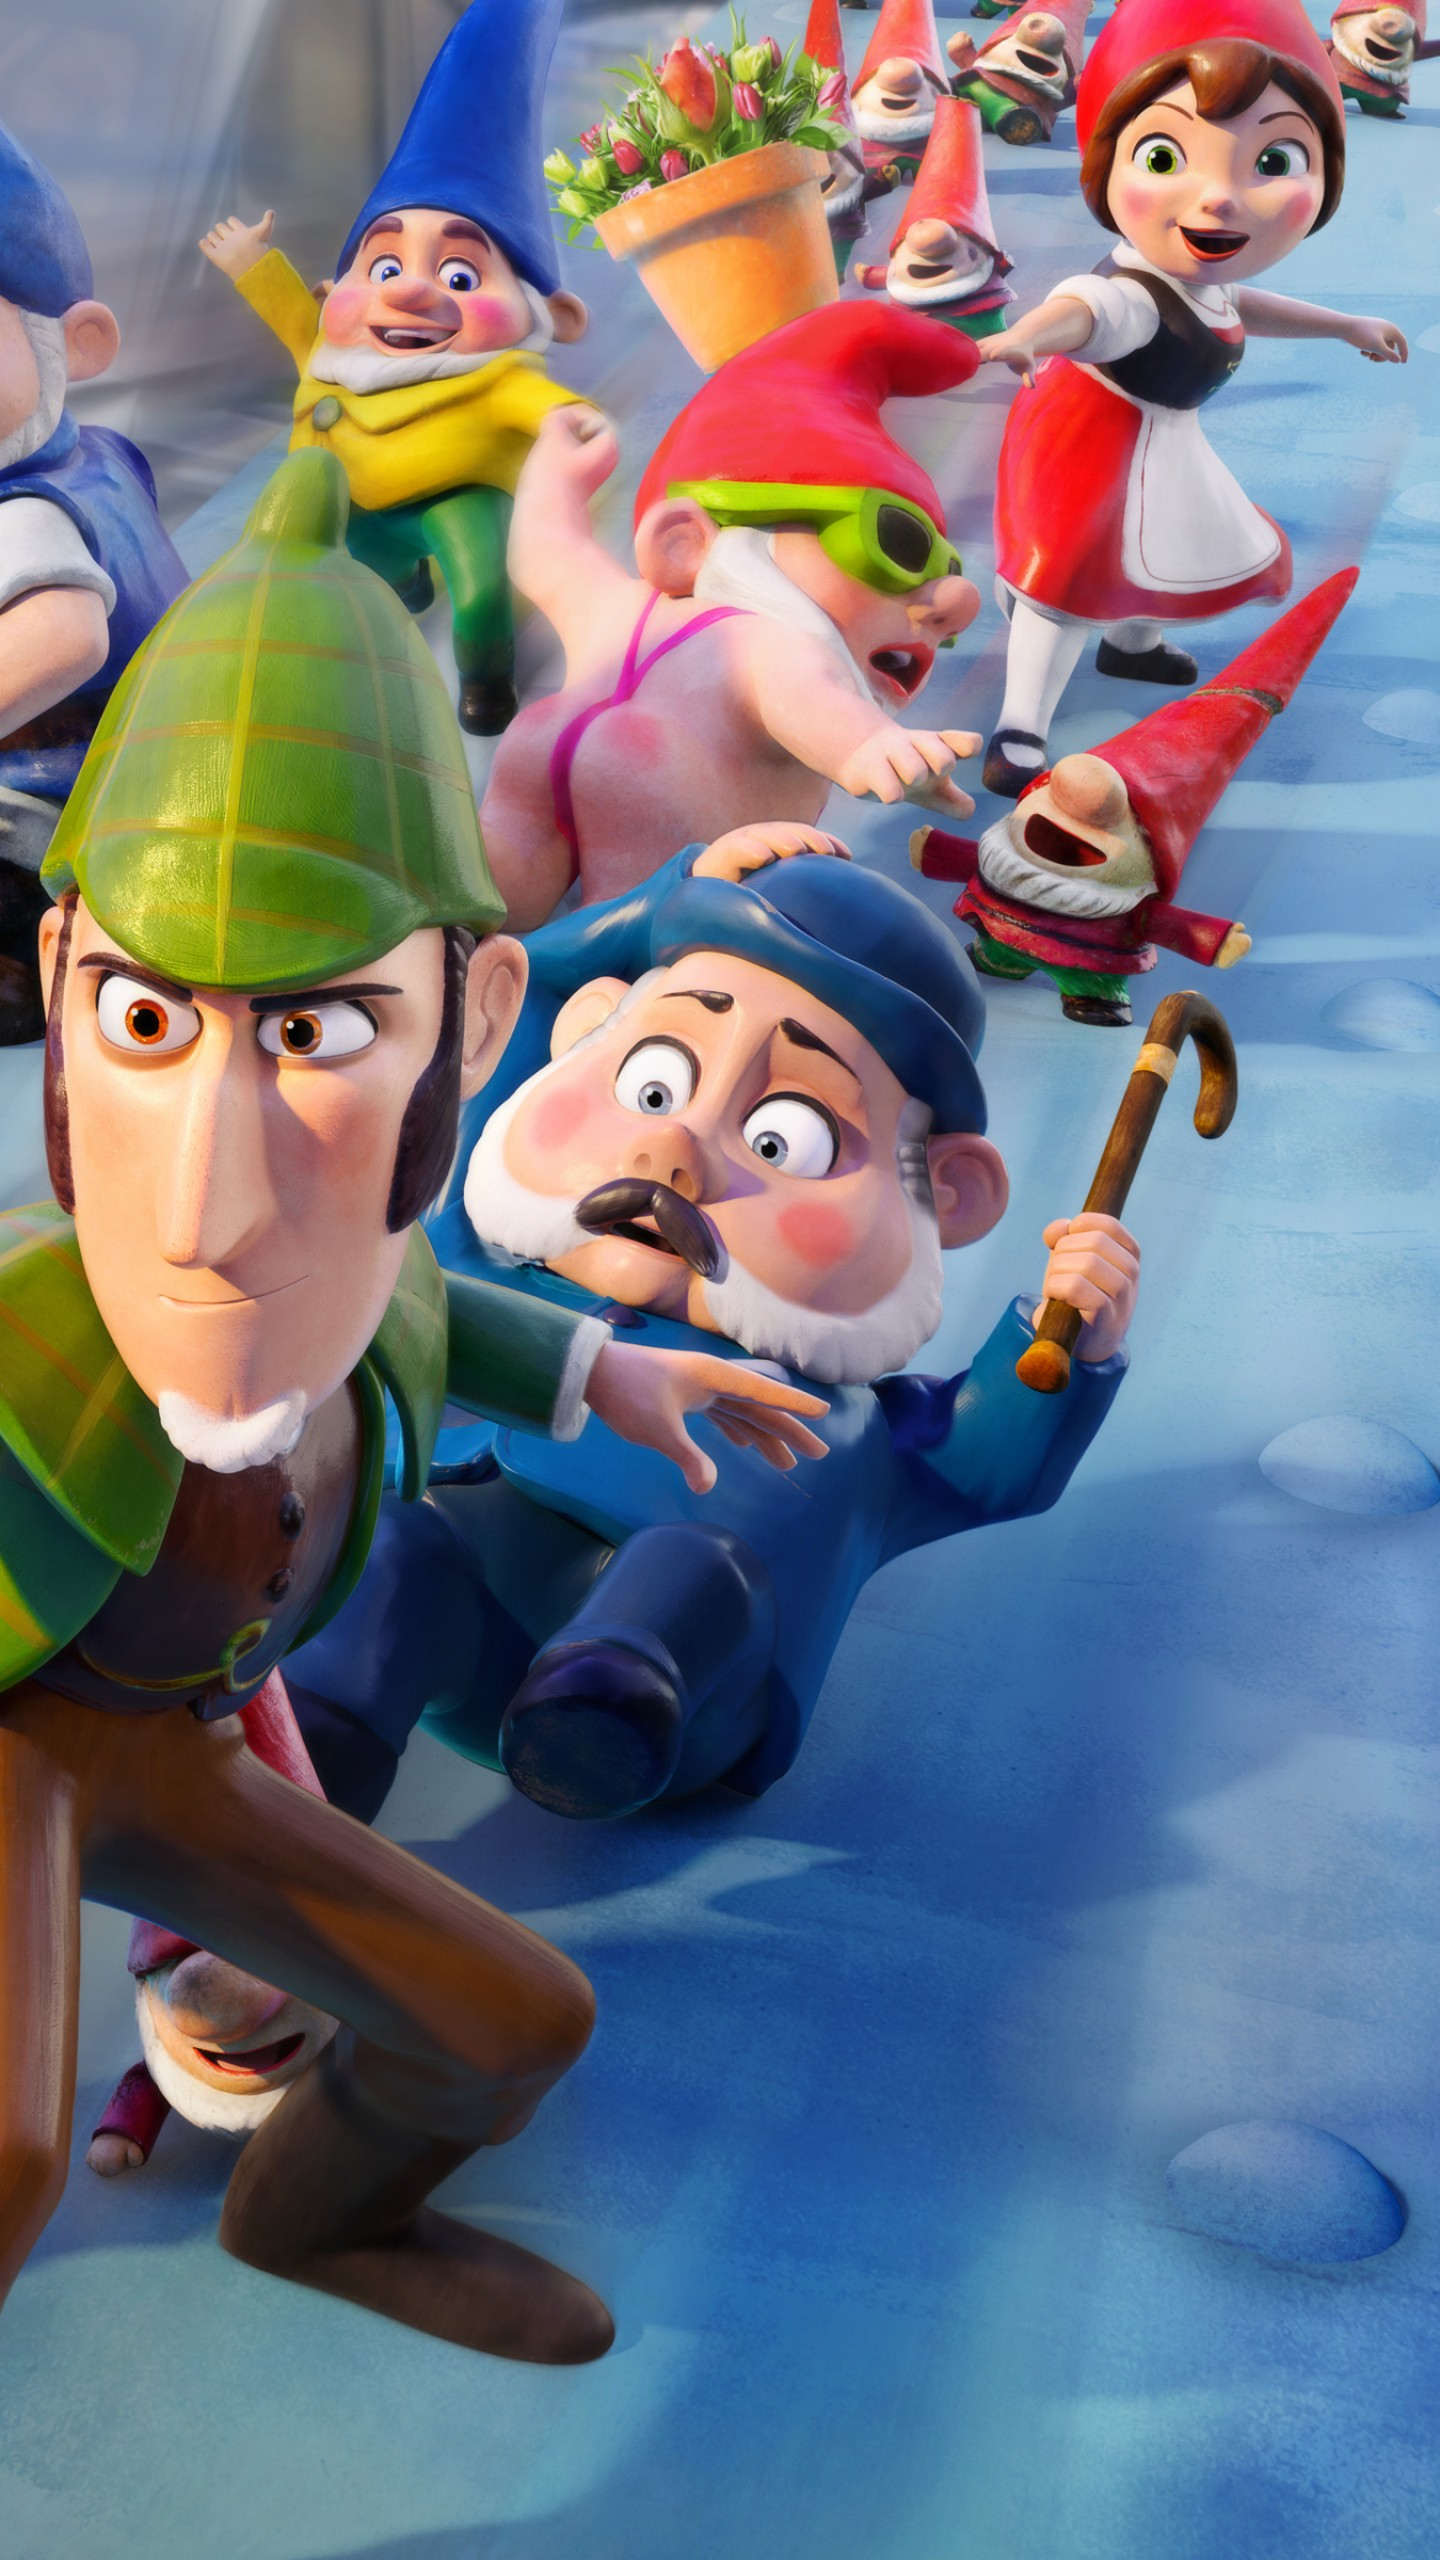 Wallpaper Gnomeo and Juliet: Sherlock Gnomes, 4k, Movies ...